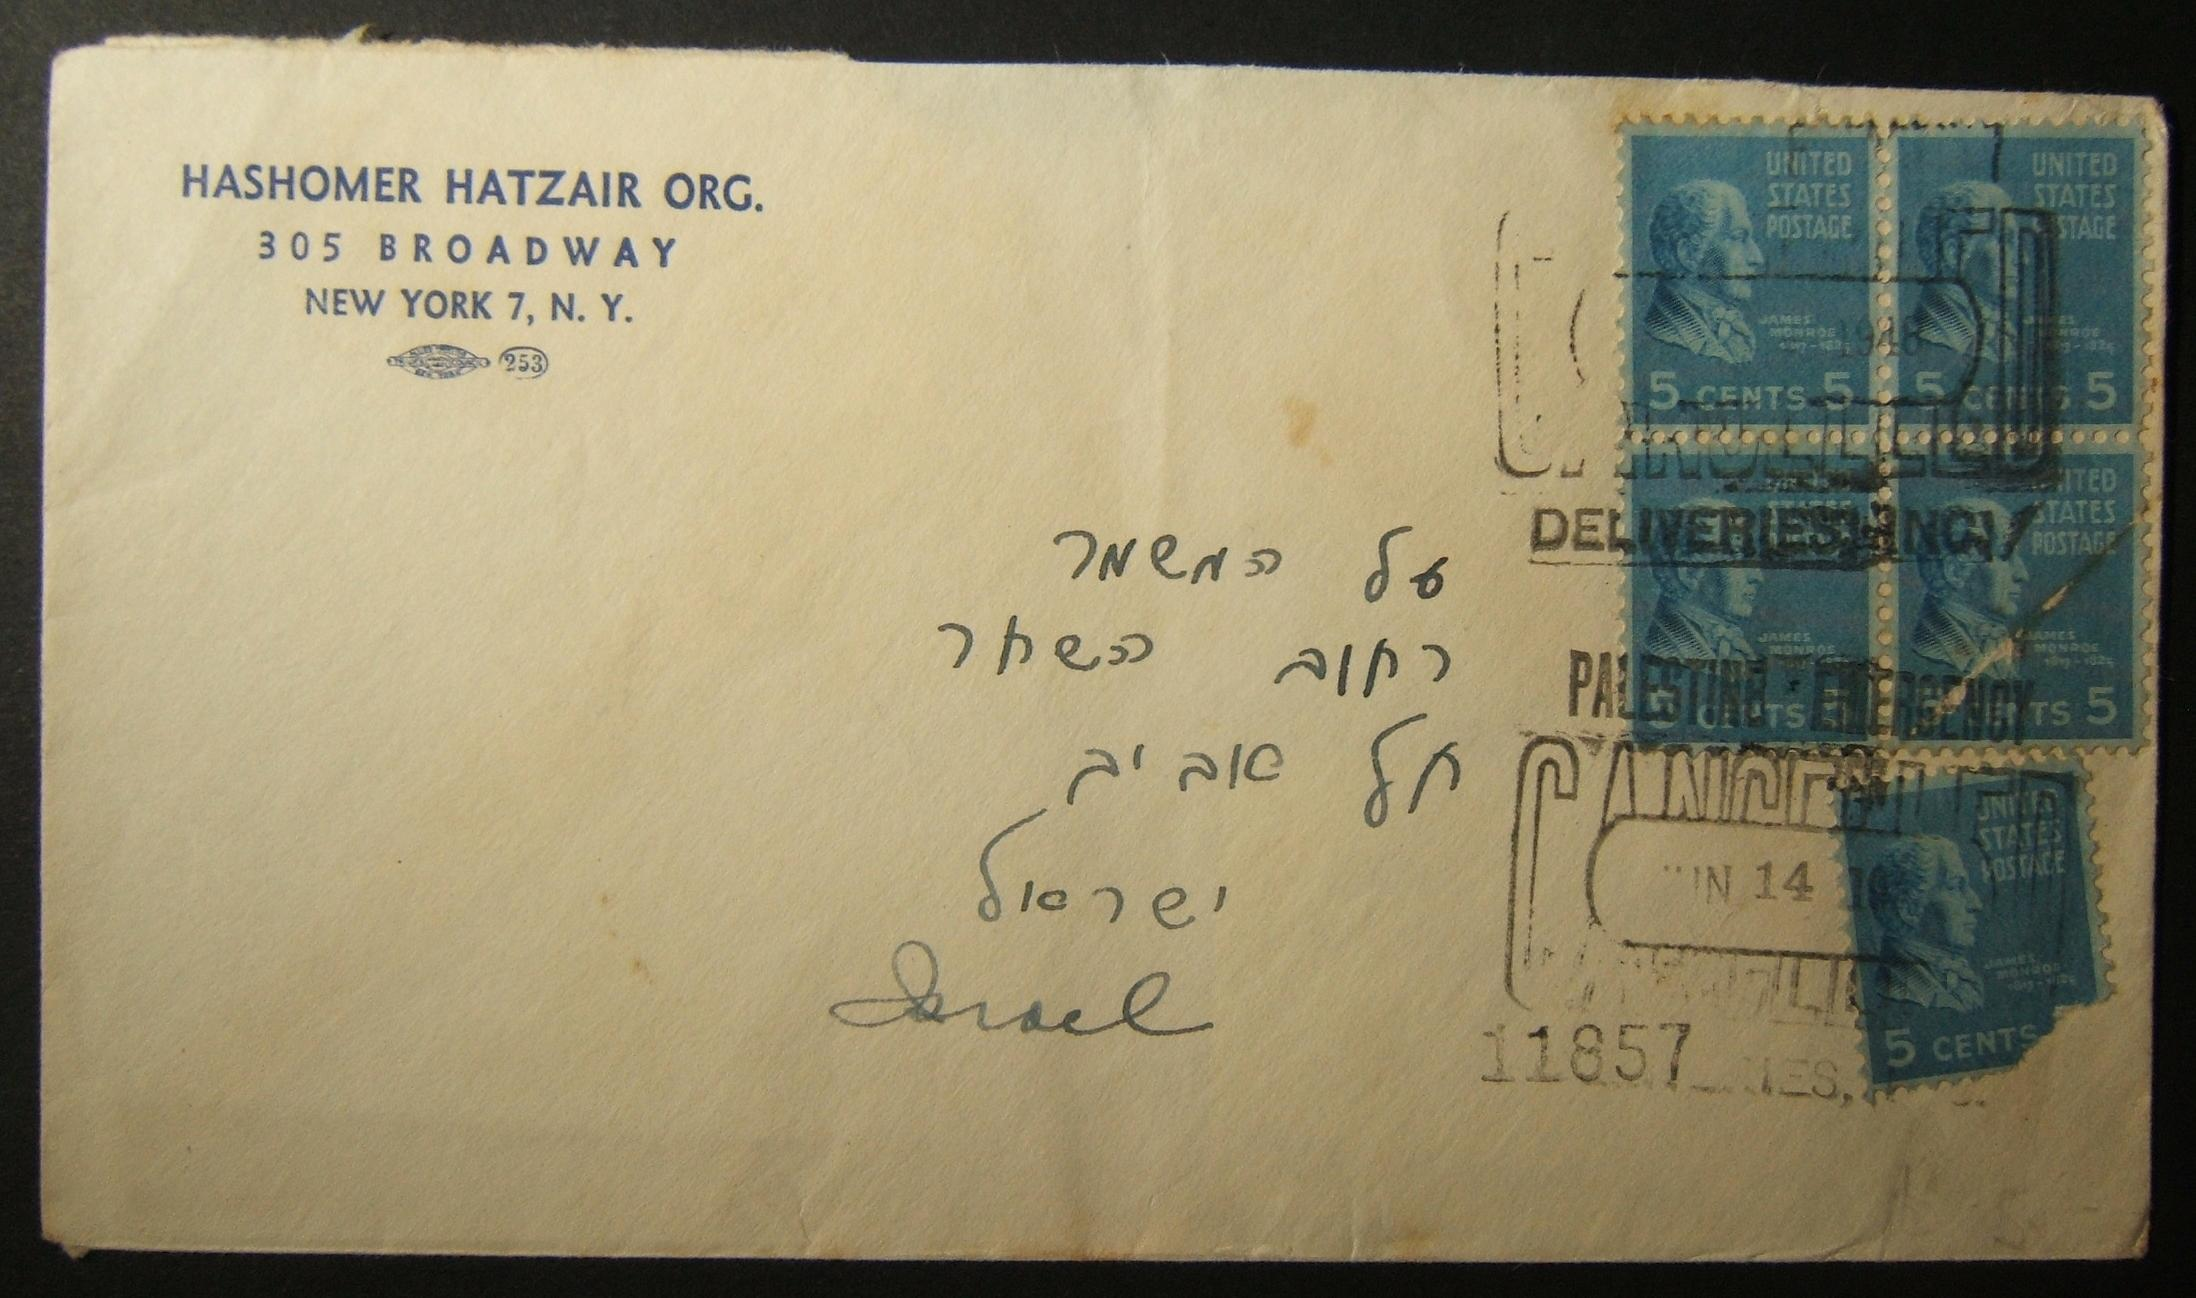 1948 PEDI airmail: HaShomer HaTzair stationary comm. cv ex NYC to TEL AVIV، a 25 cc rate air rate rate with a strikes of JUNE 14 1948 Type II cancels and numbered 11857؛ الصورة